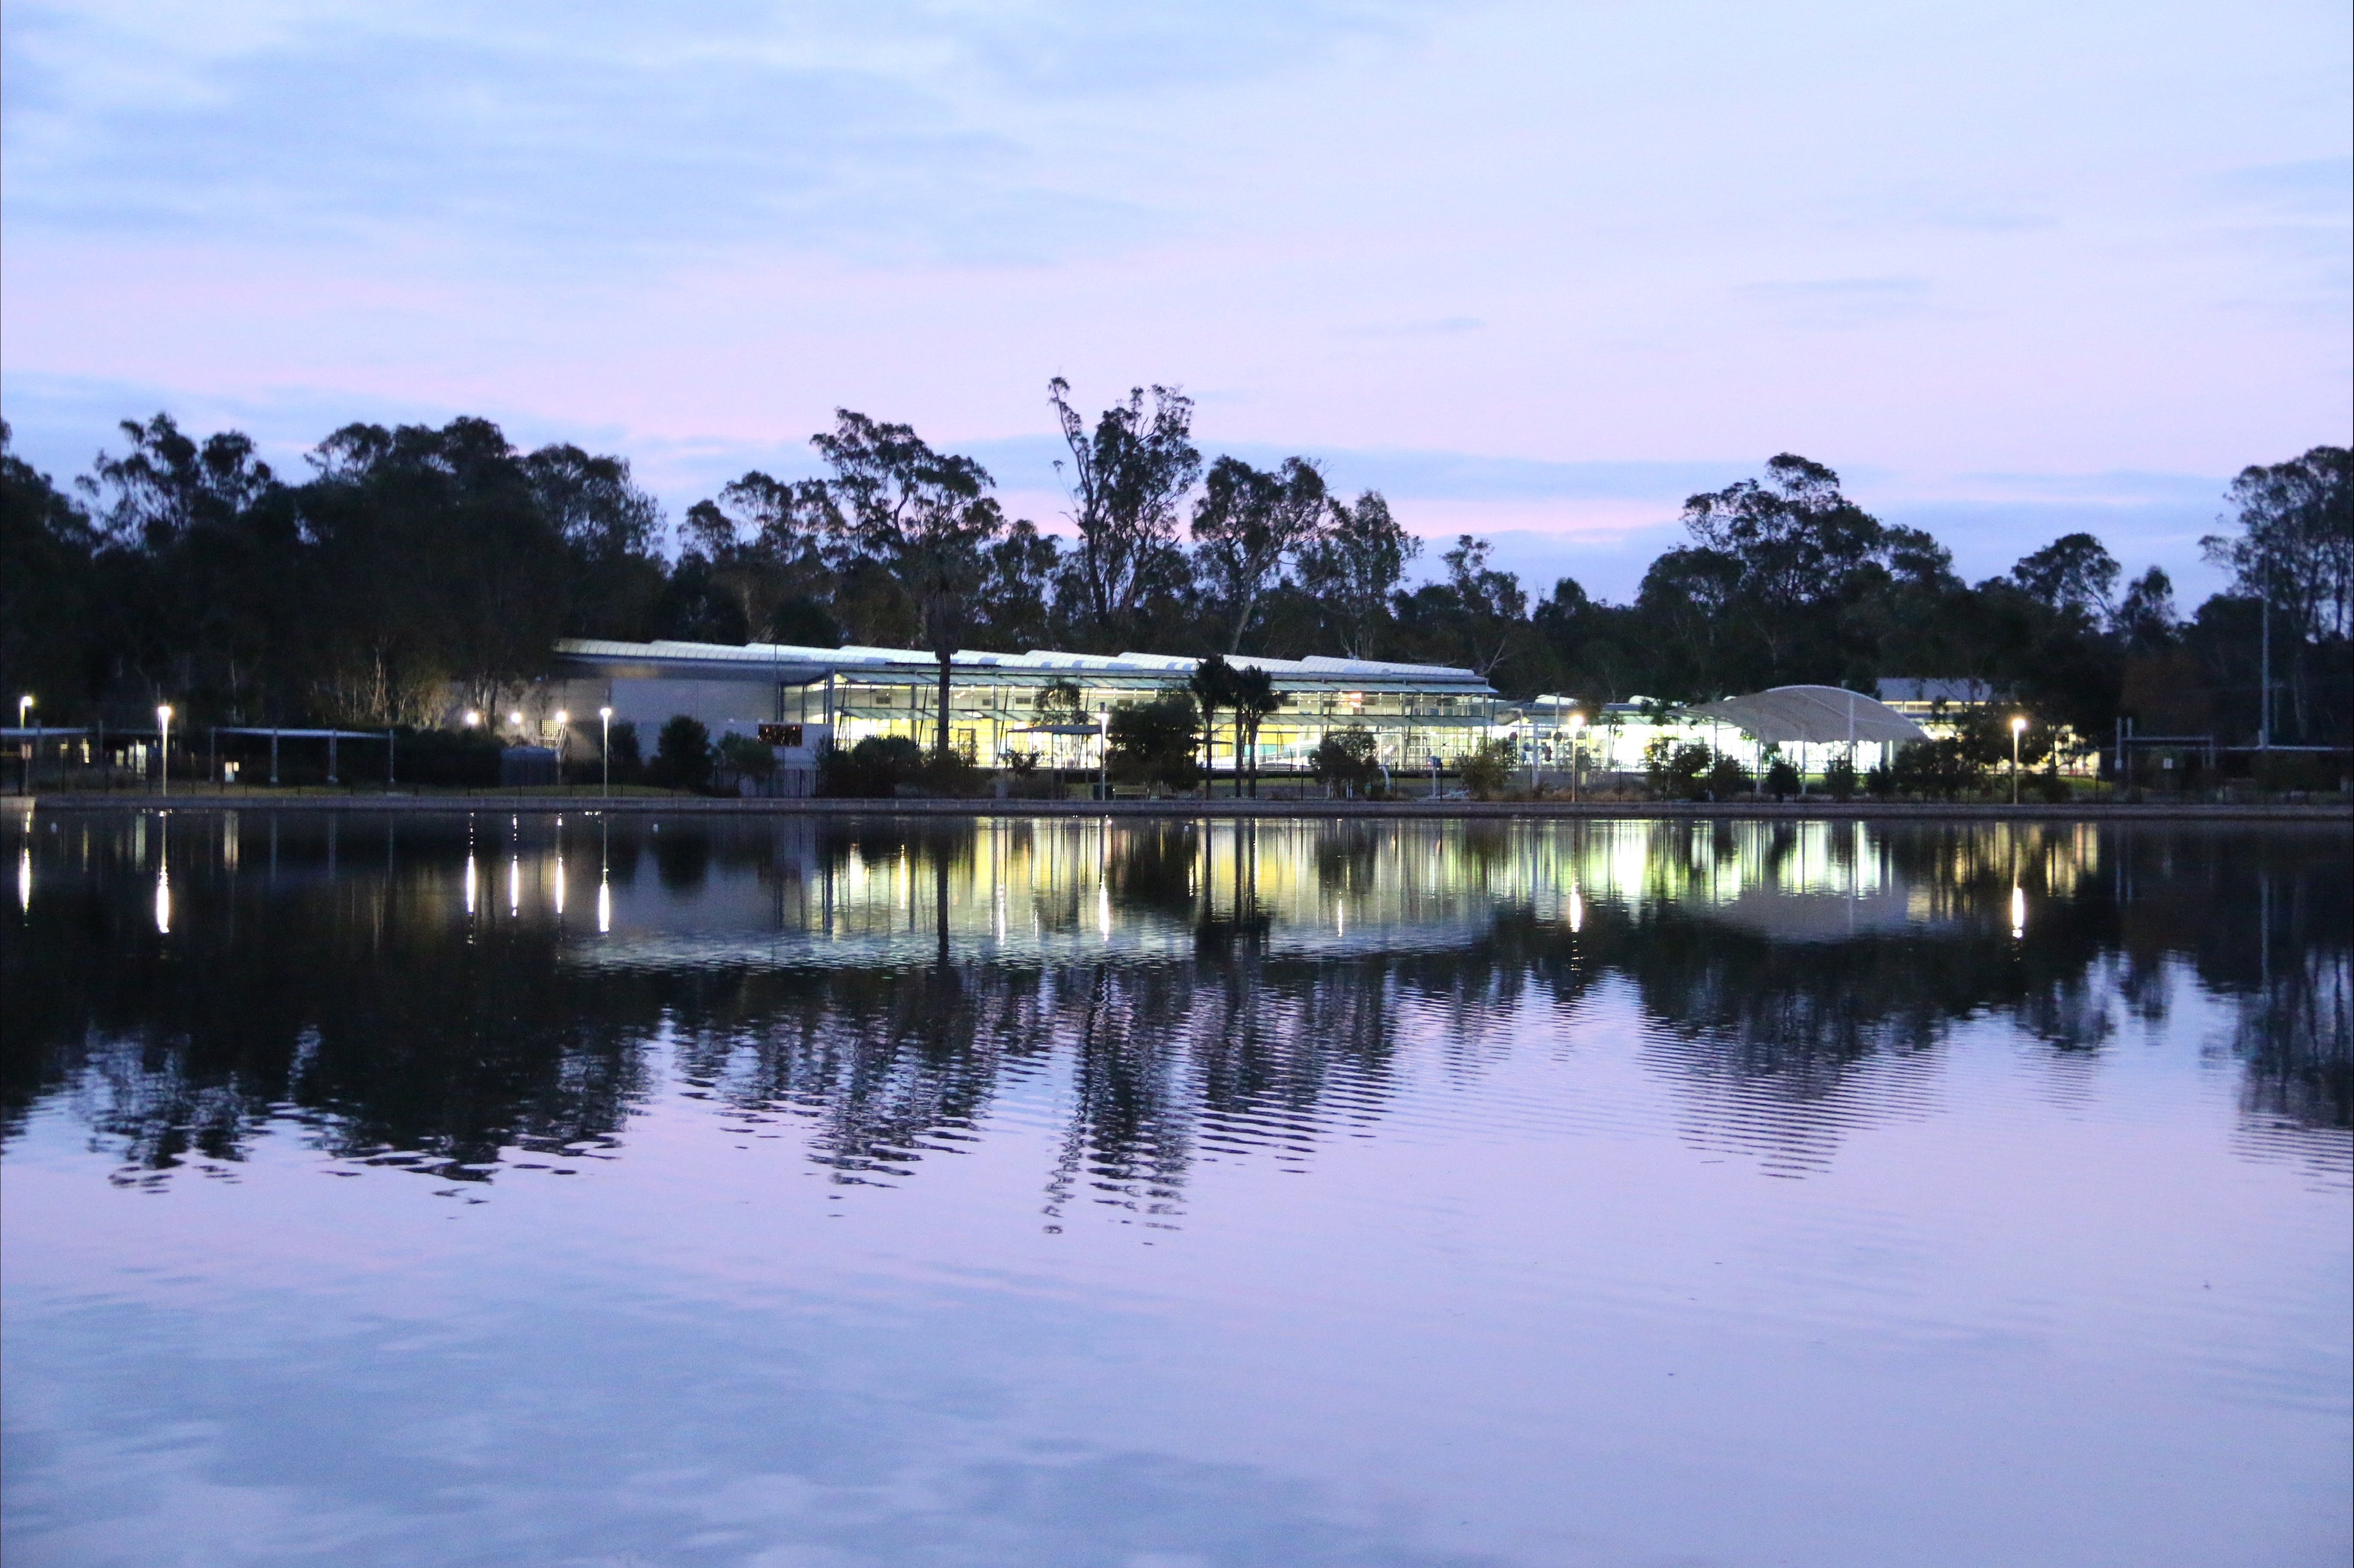 Aquamoves Lakeside Shepparton - Attractions